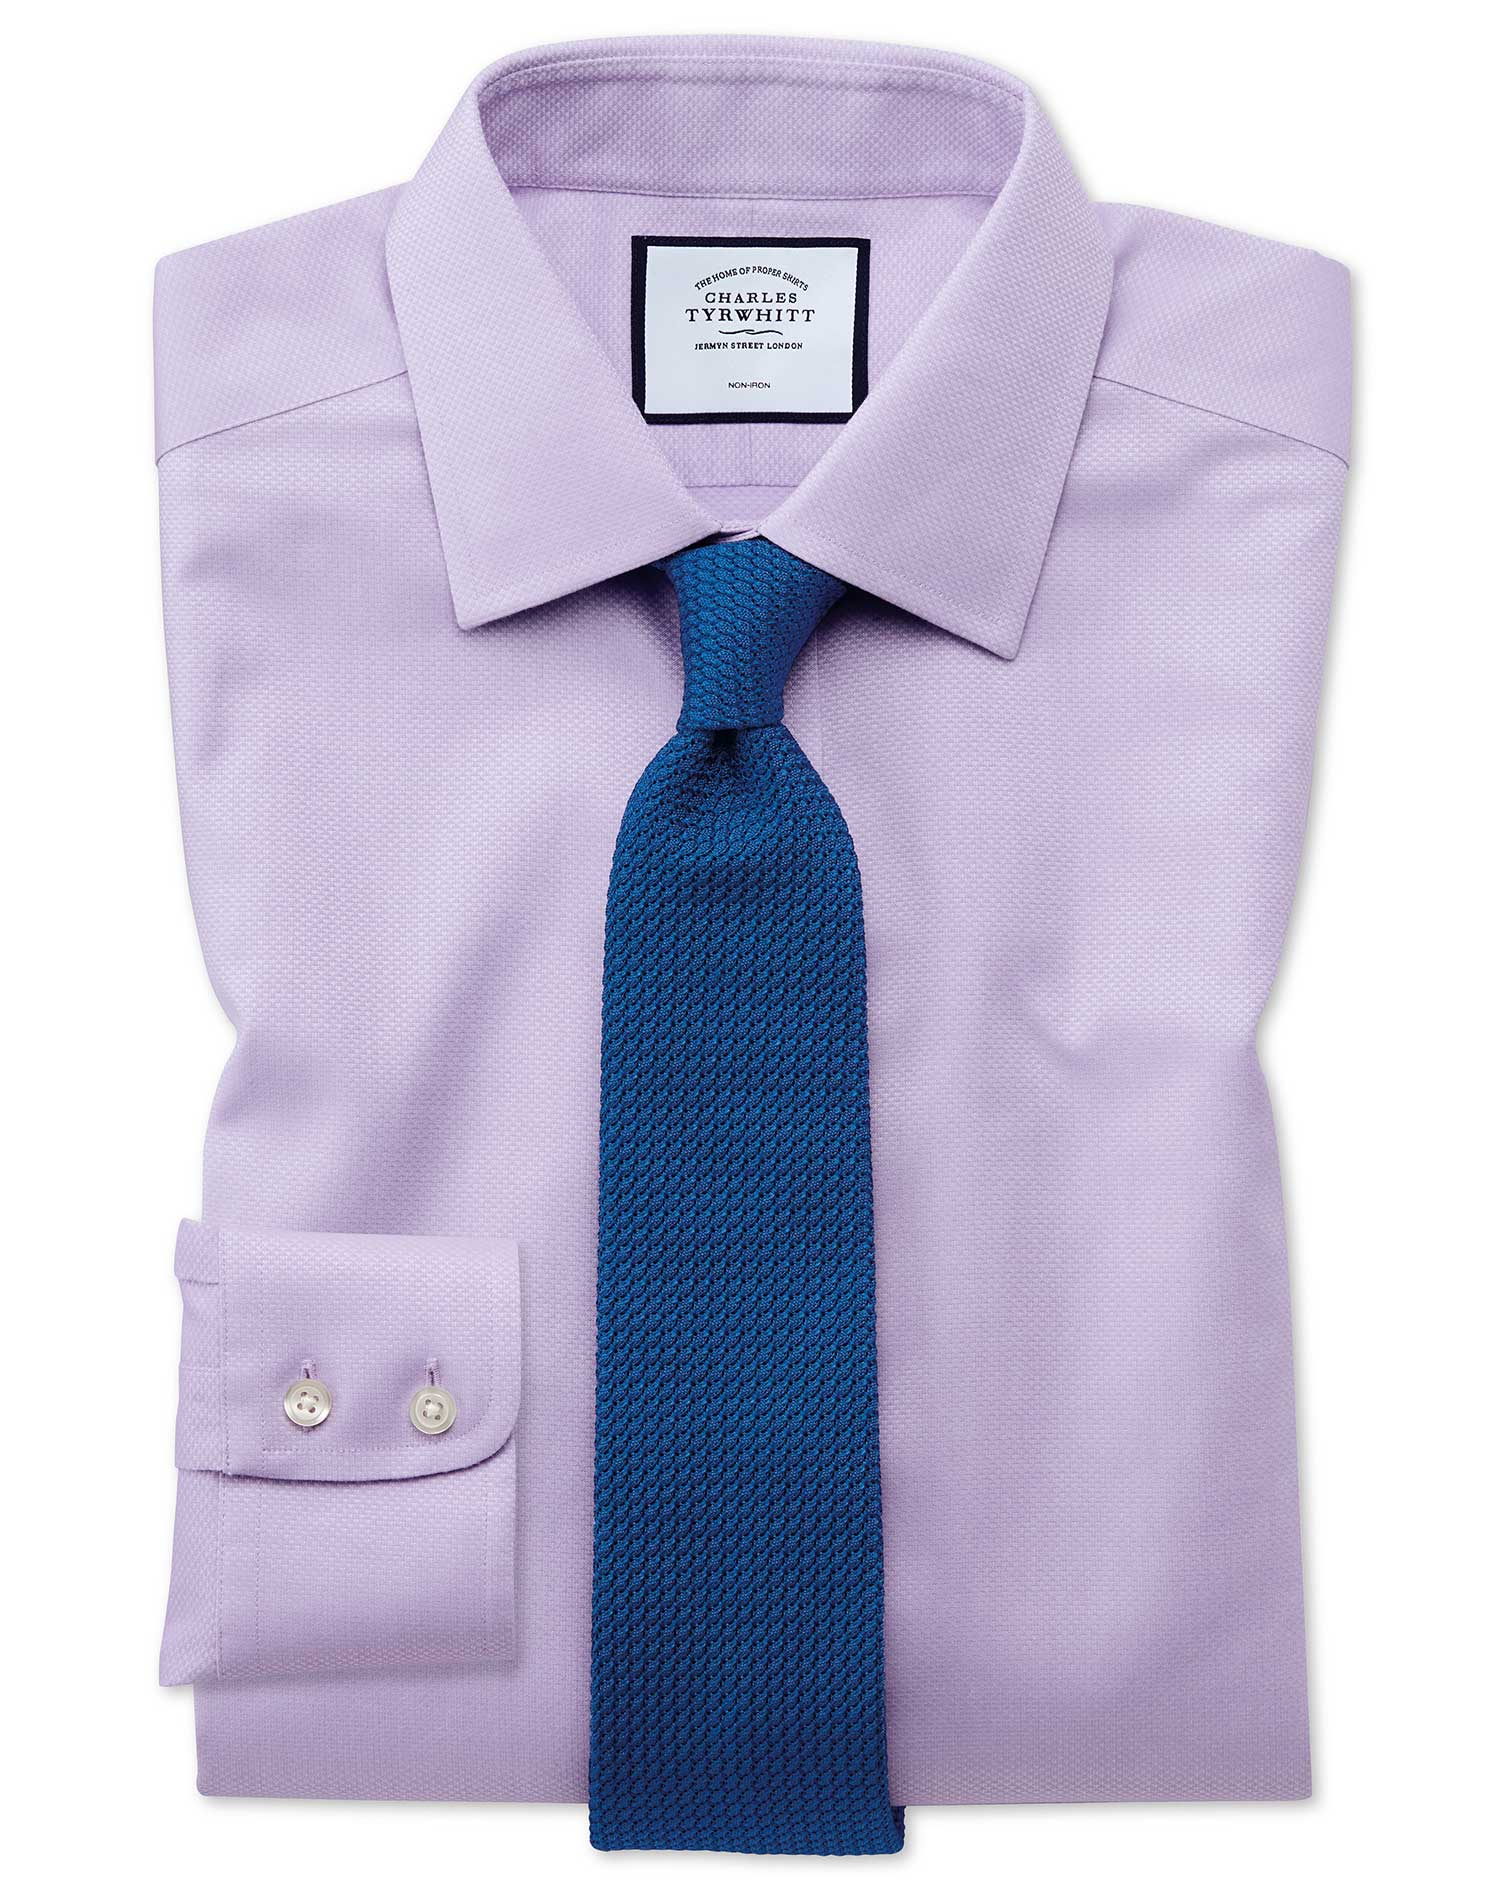 Classic Fit Non-Iron Lilac Triangle Weave Cotton Formal Shirt Double Cuff Size 17/34 by Charles Tyrw